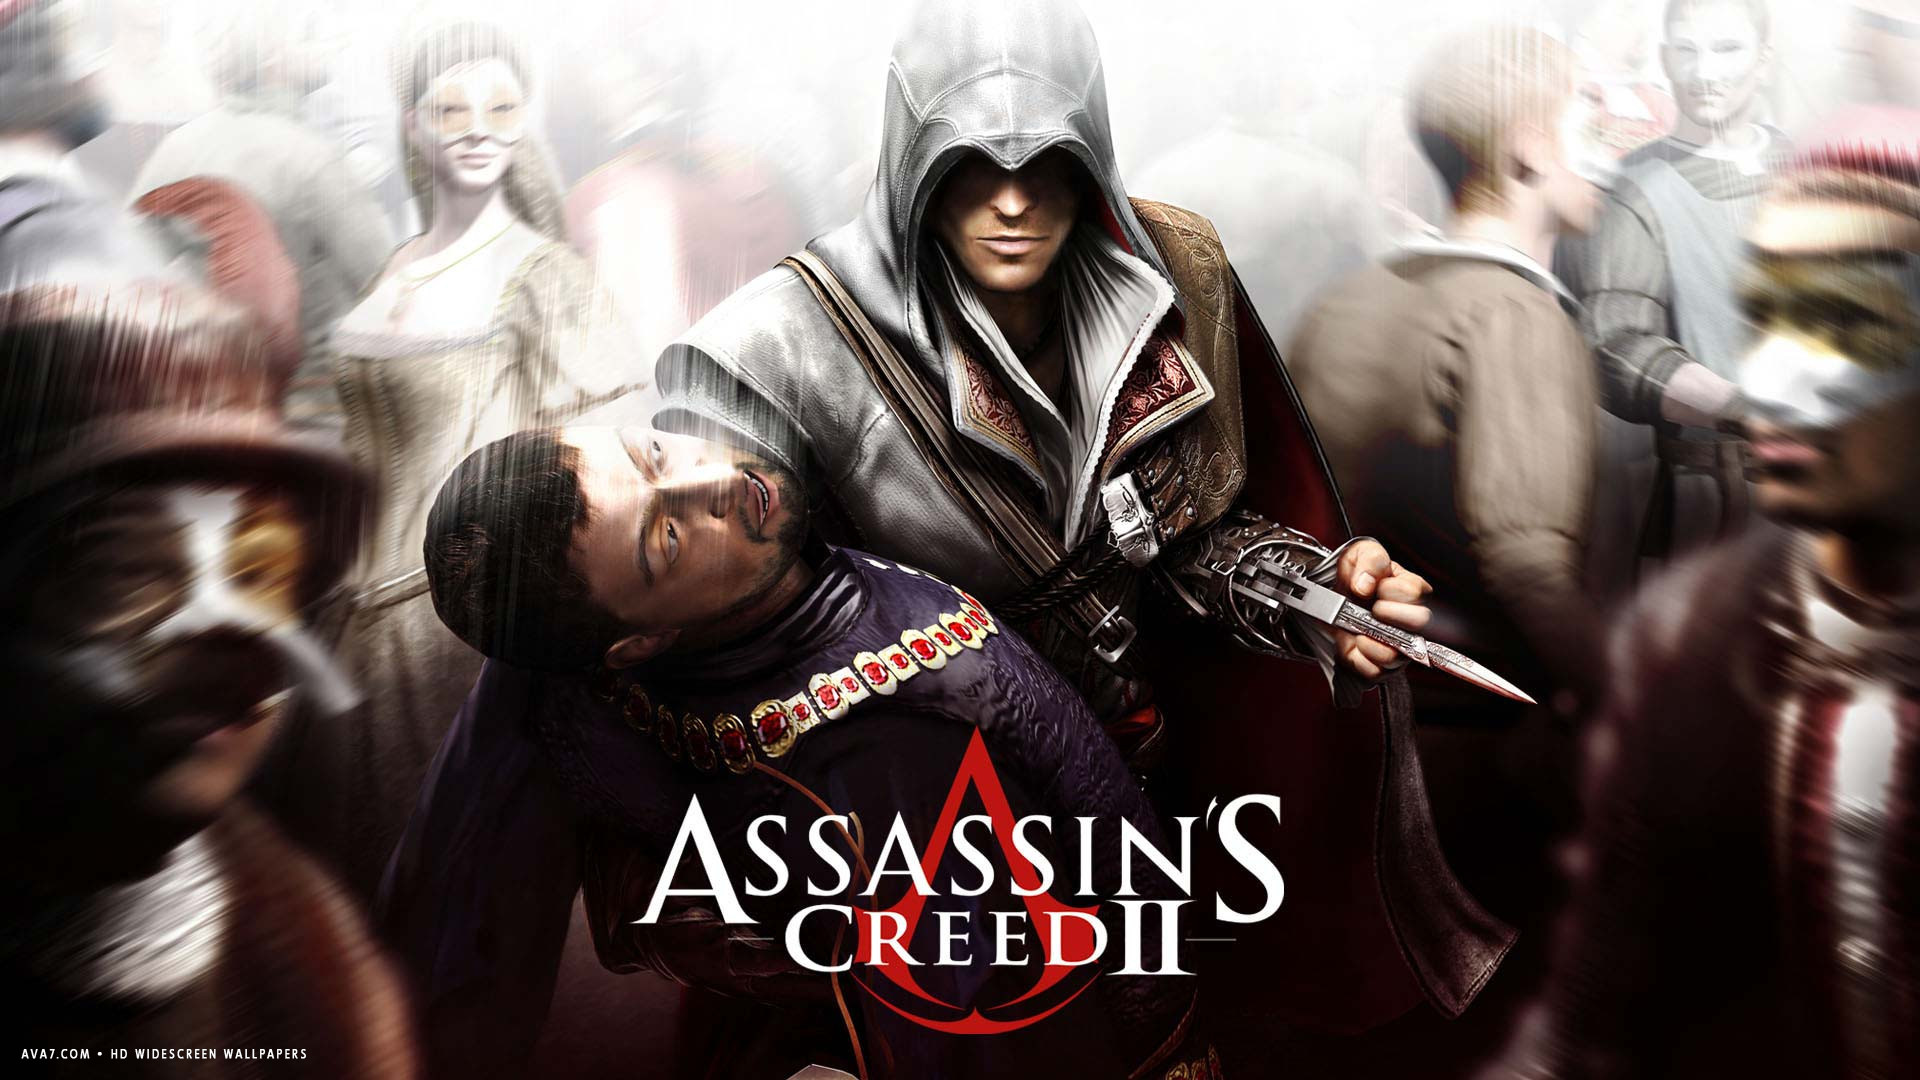 assassins creed 2 game epic historical action adventure stealth hd widescreen wallpaper